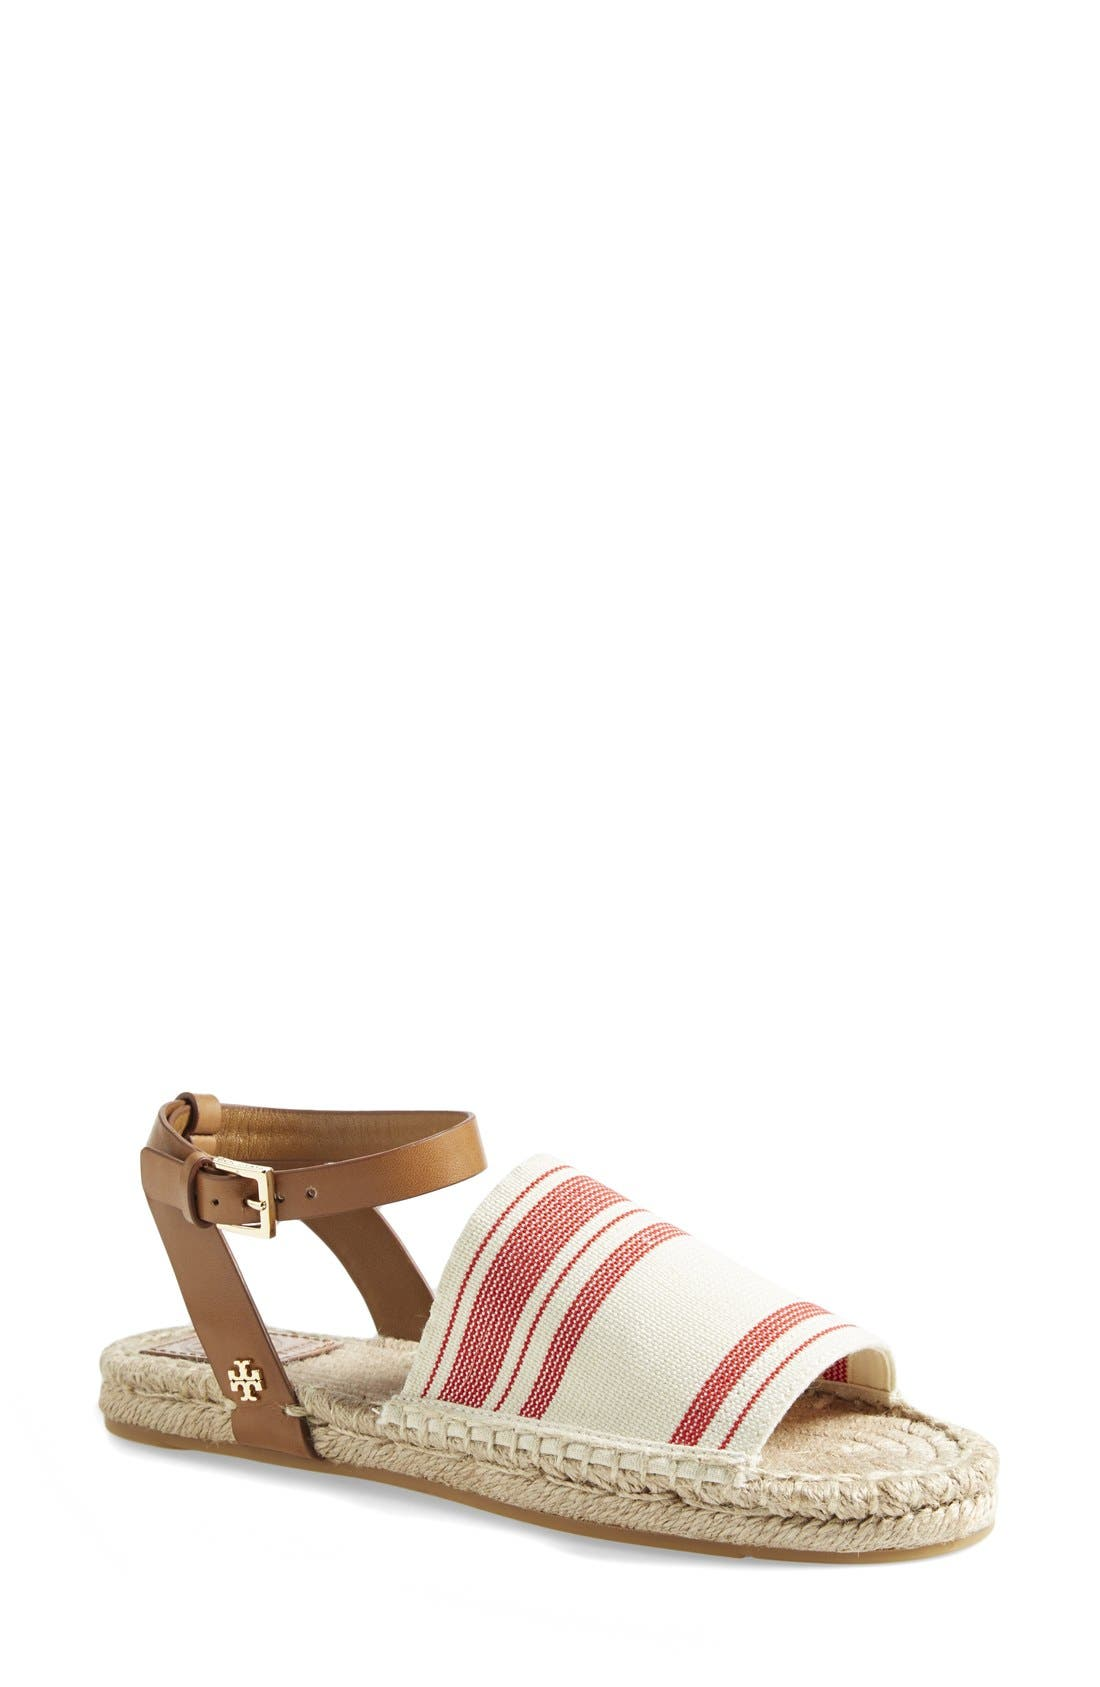 Alternate Image 1 Selected - Tory Burch Espadrille Sandal (Women)